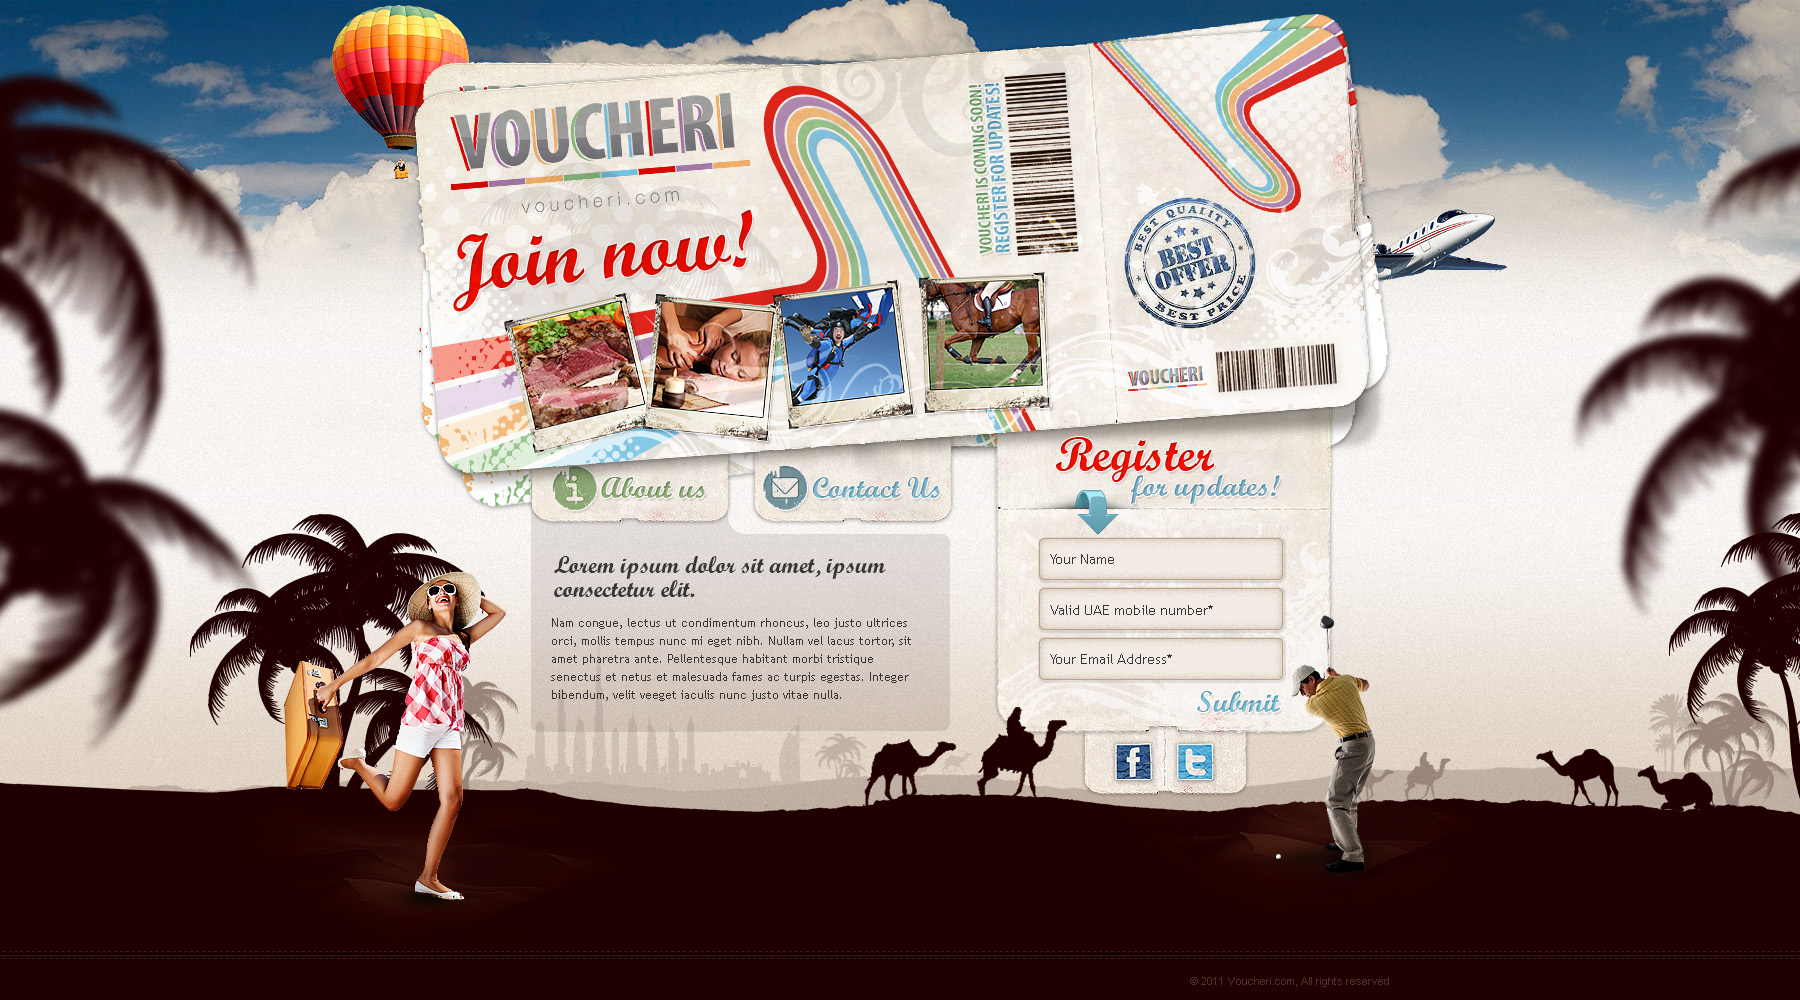 Web design: Voucheri by VictoryDesign